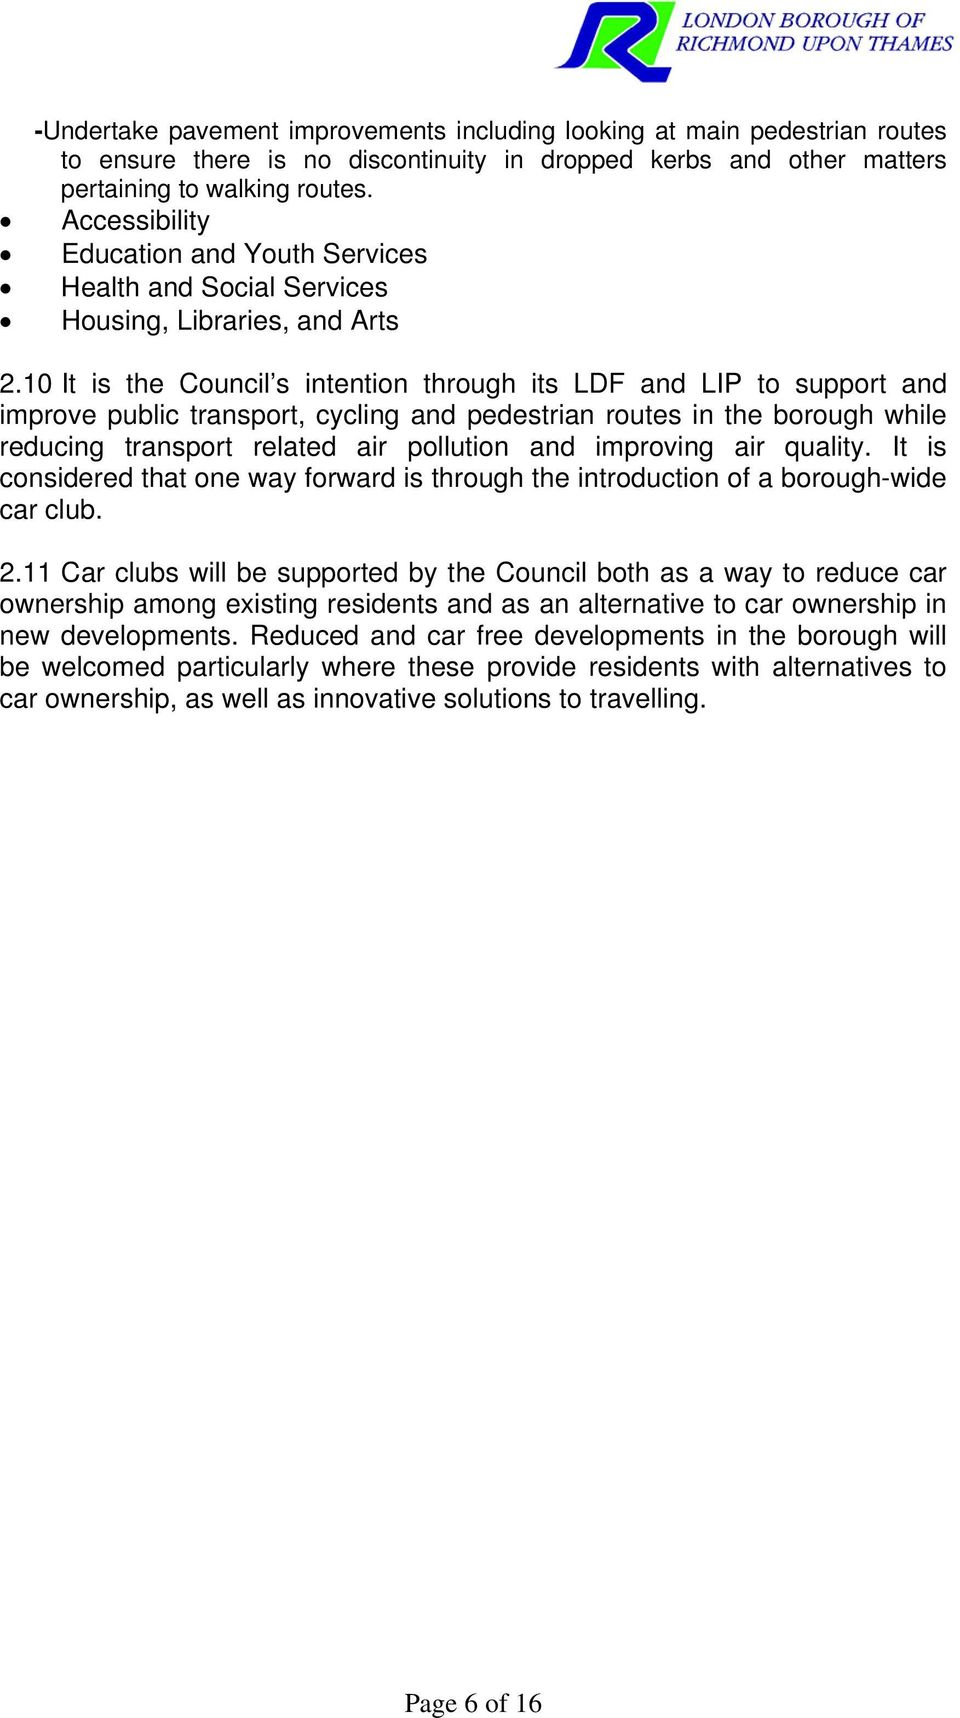 10 It is the Council s intention through its LDF and LIP to support and improve public transport, cycling and pedestrian routes in the borough while reducing transport related air pollution and